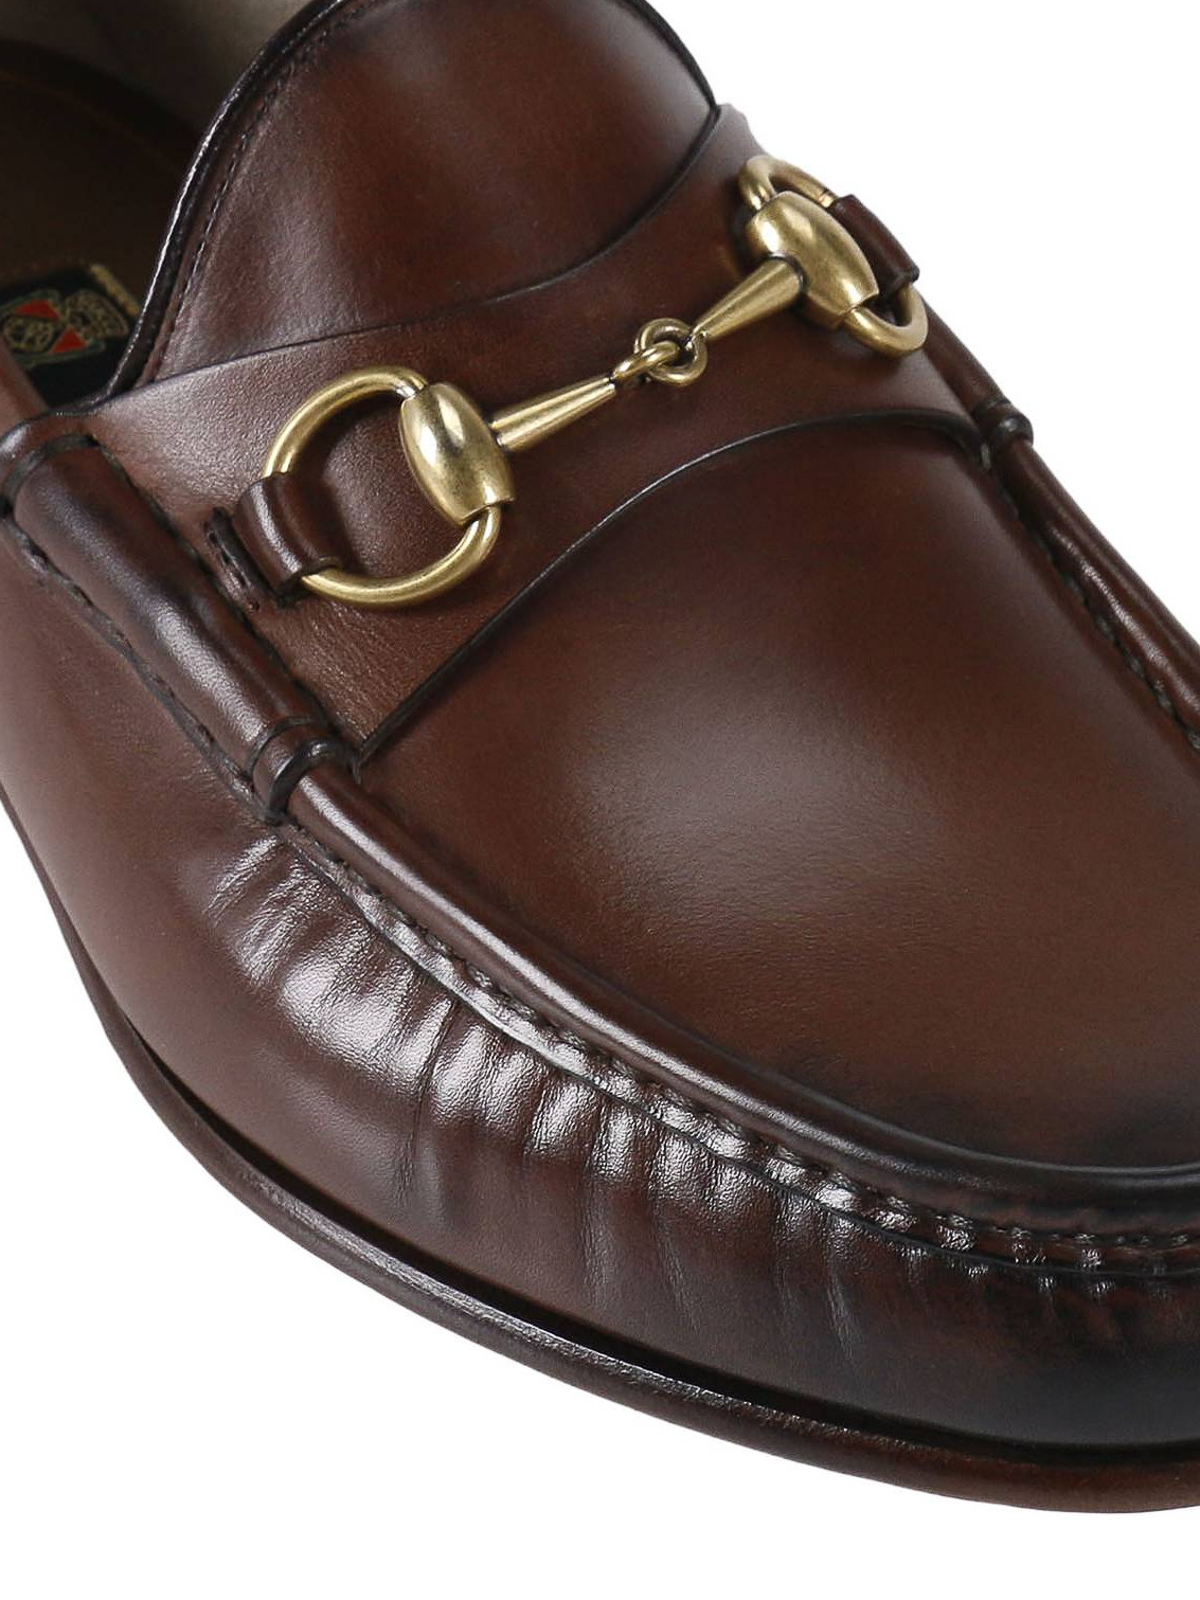 Gucci - 1953 horsebit leather loafers